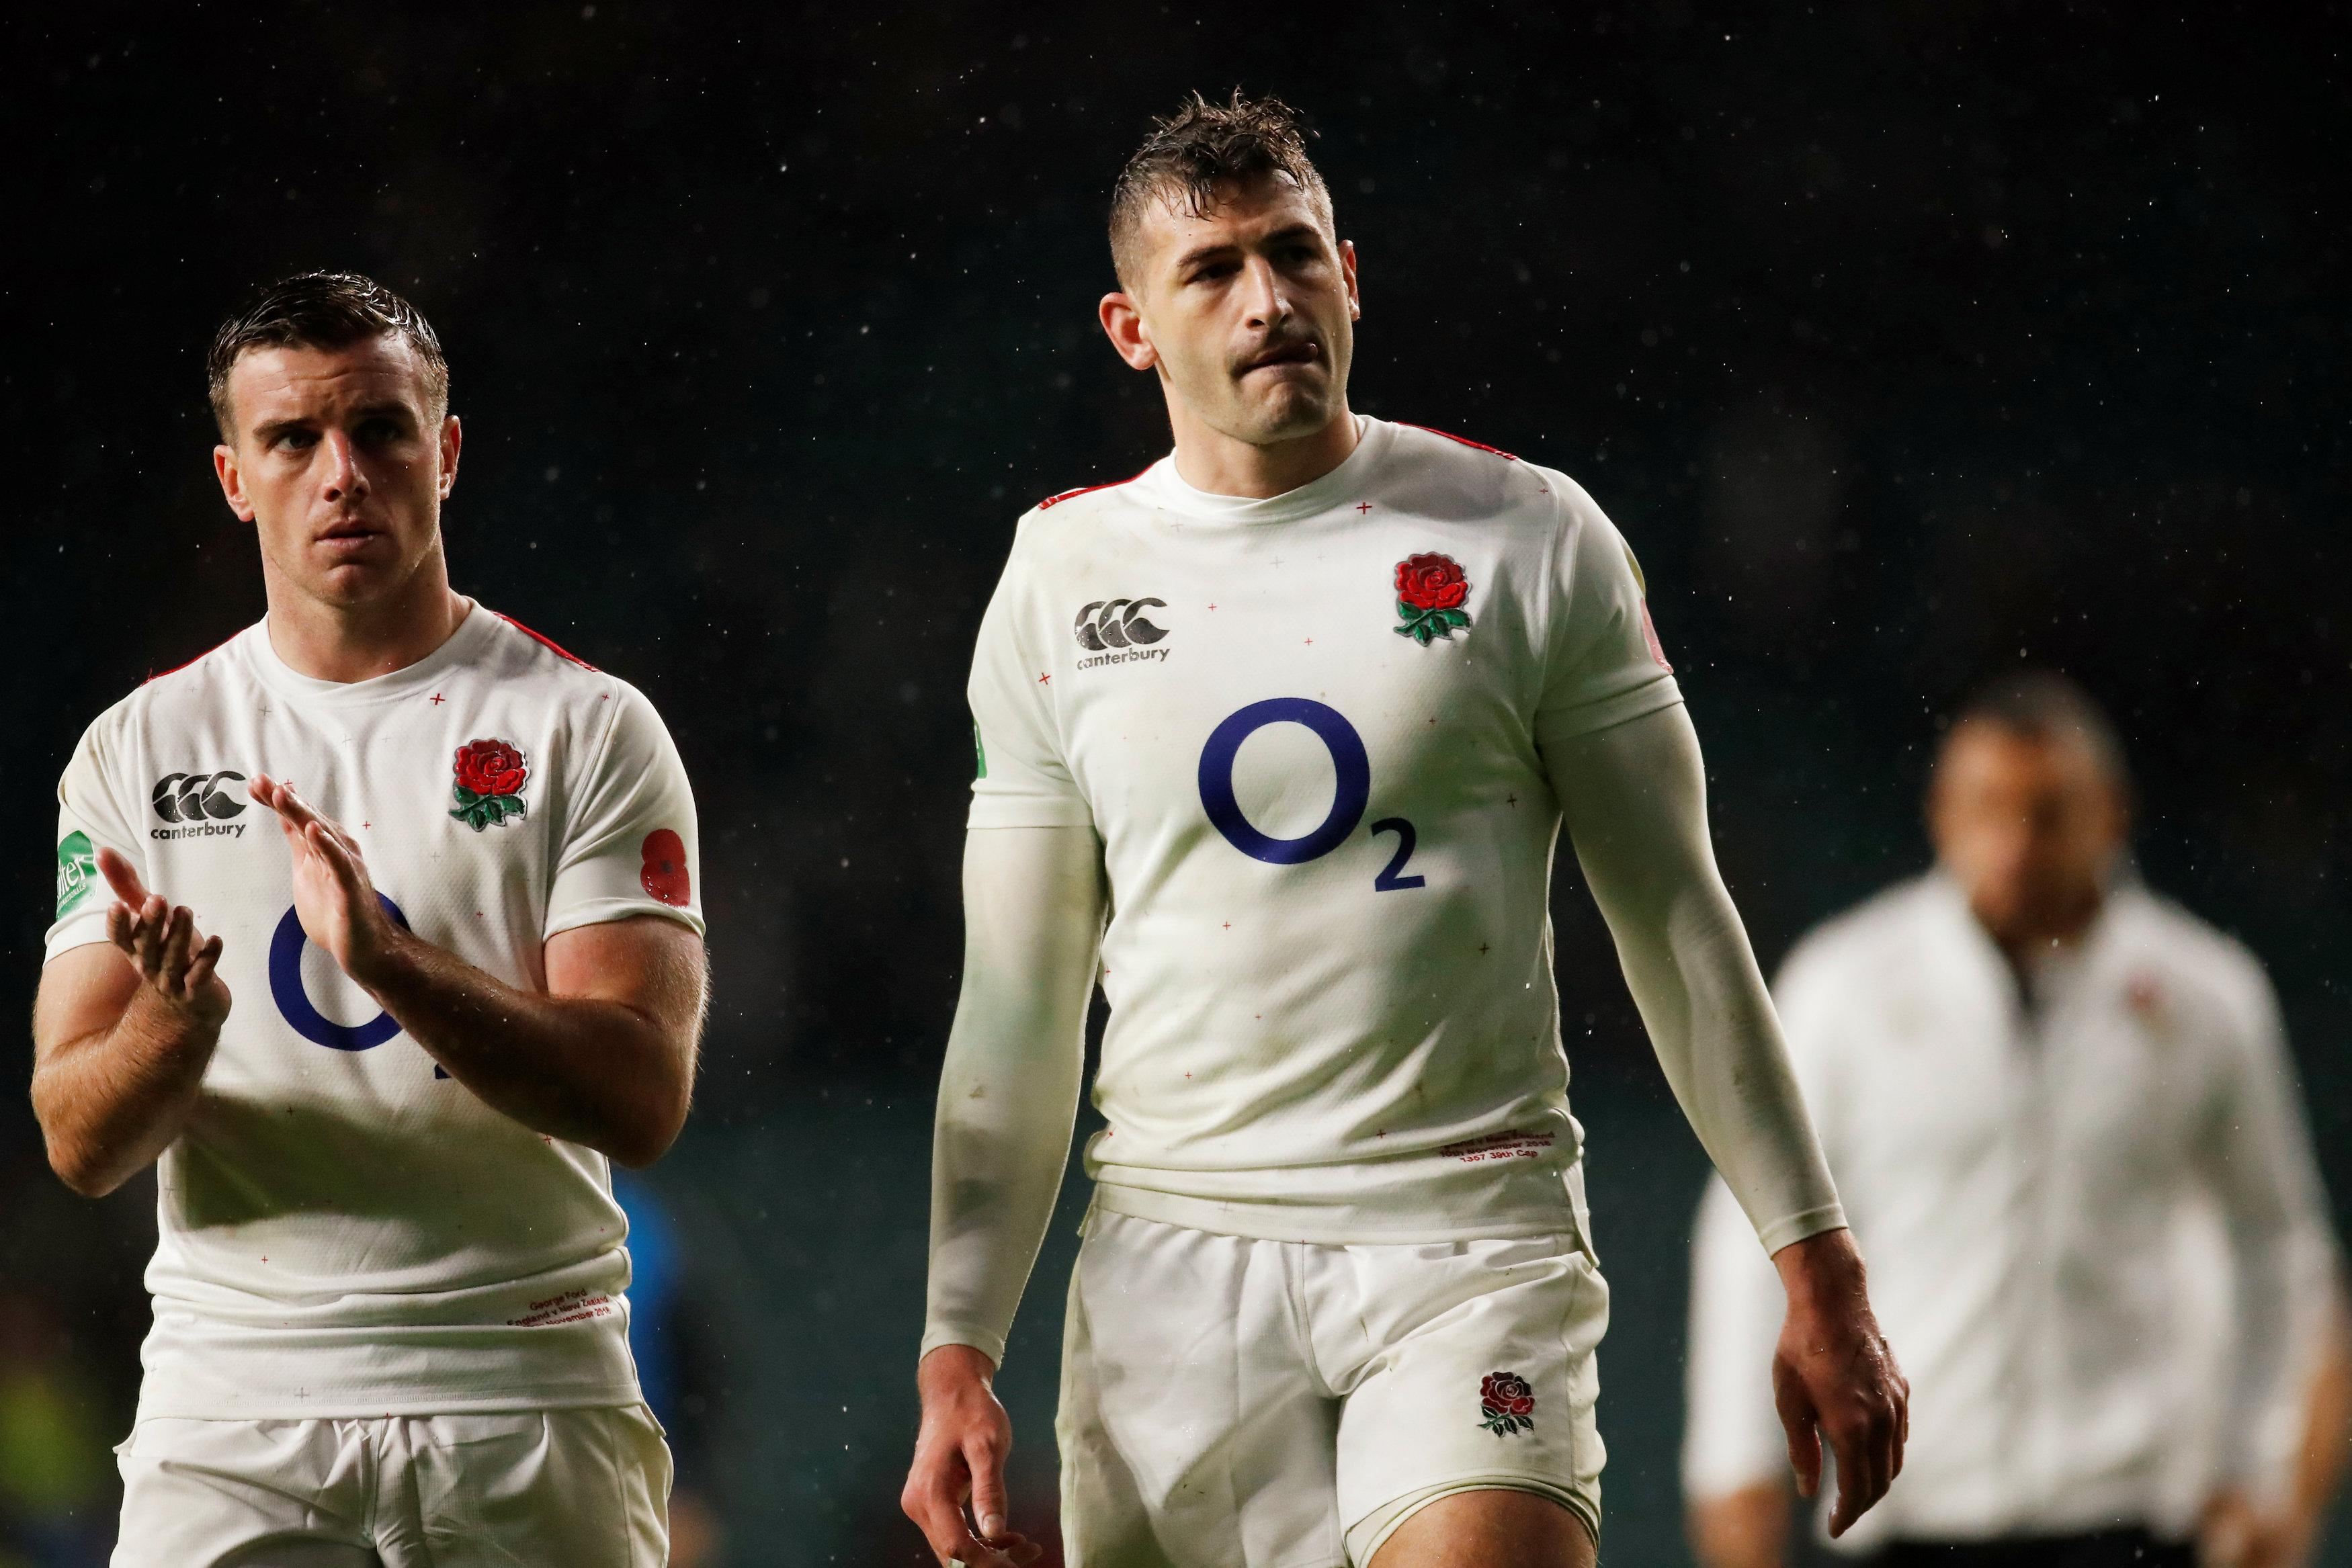 Ford was dejected after the loss to All Blacks